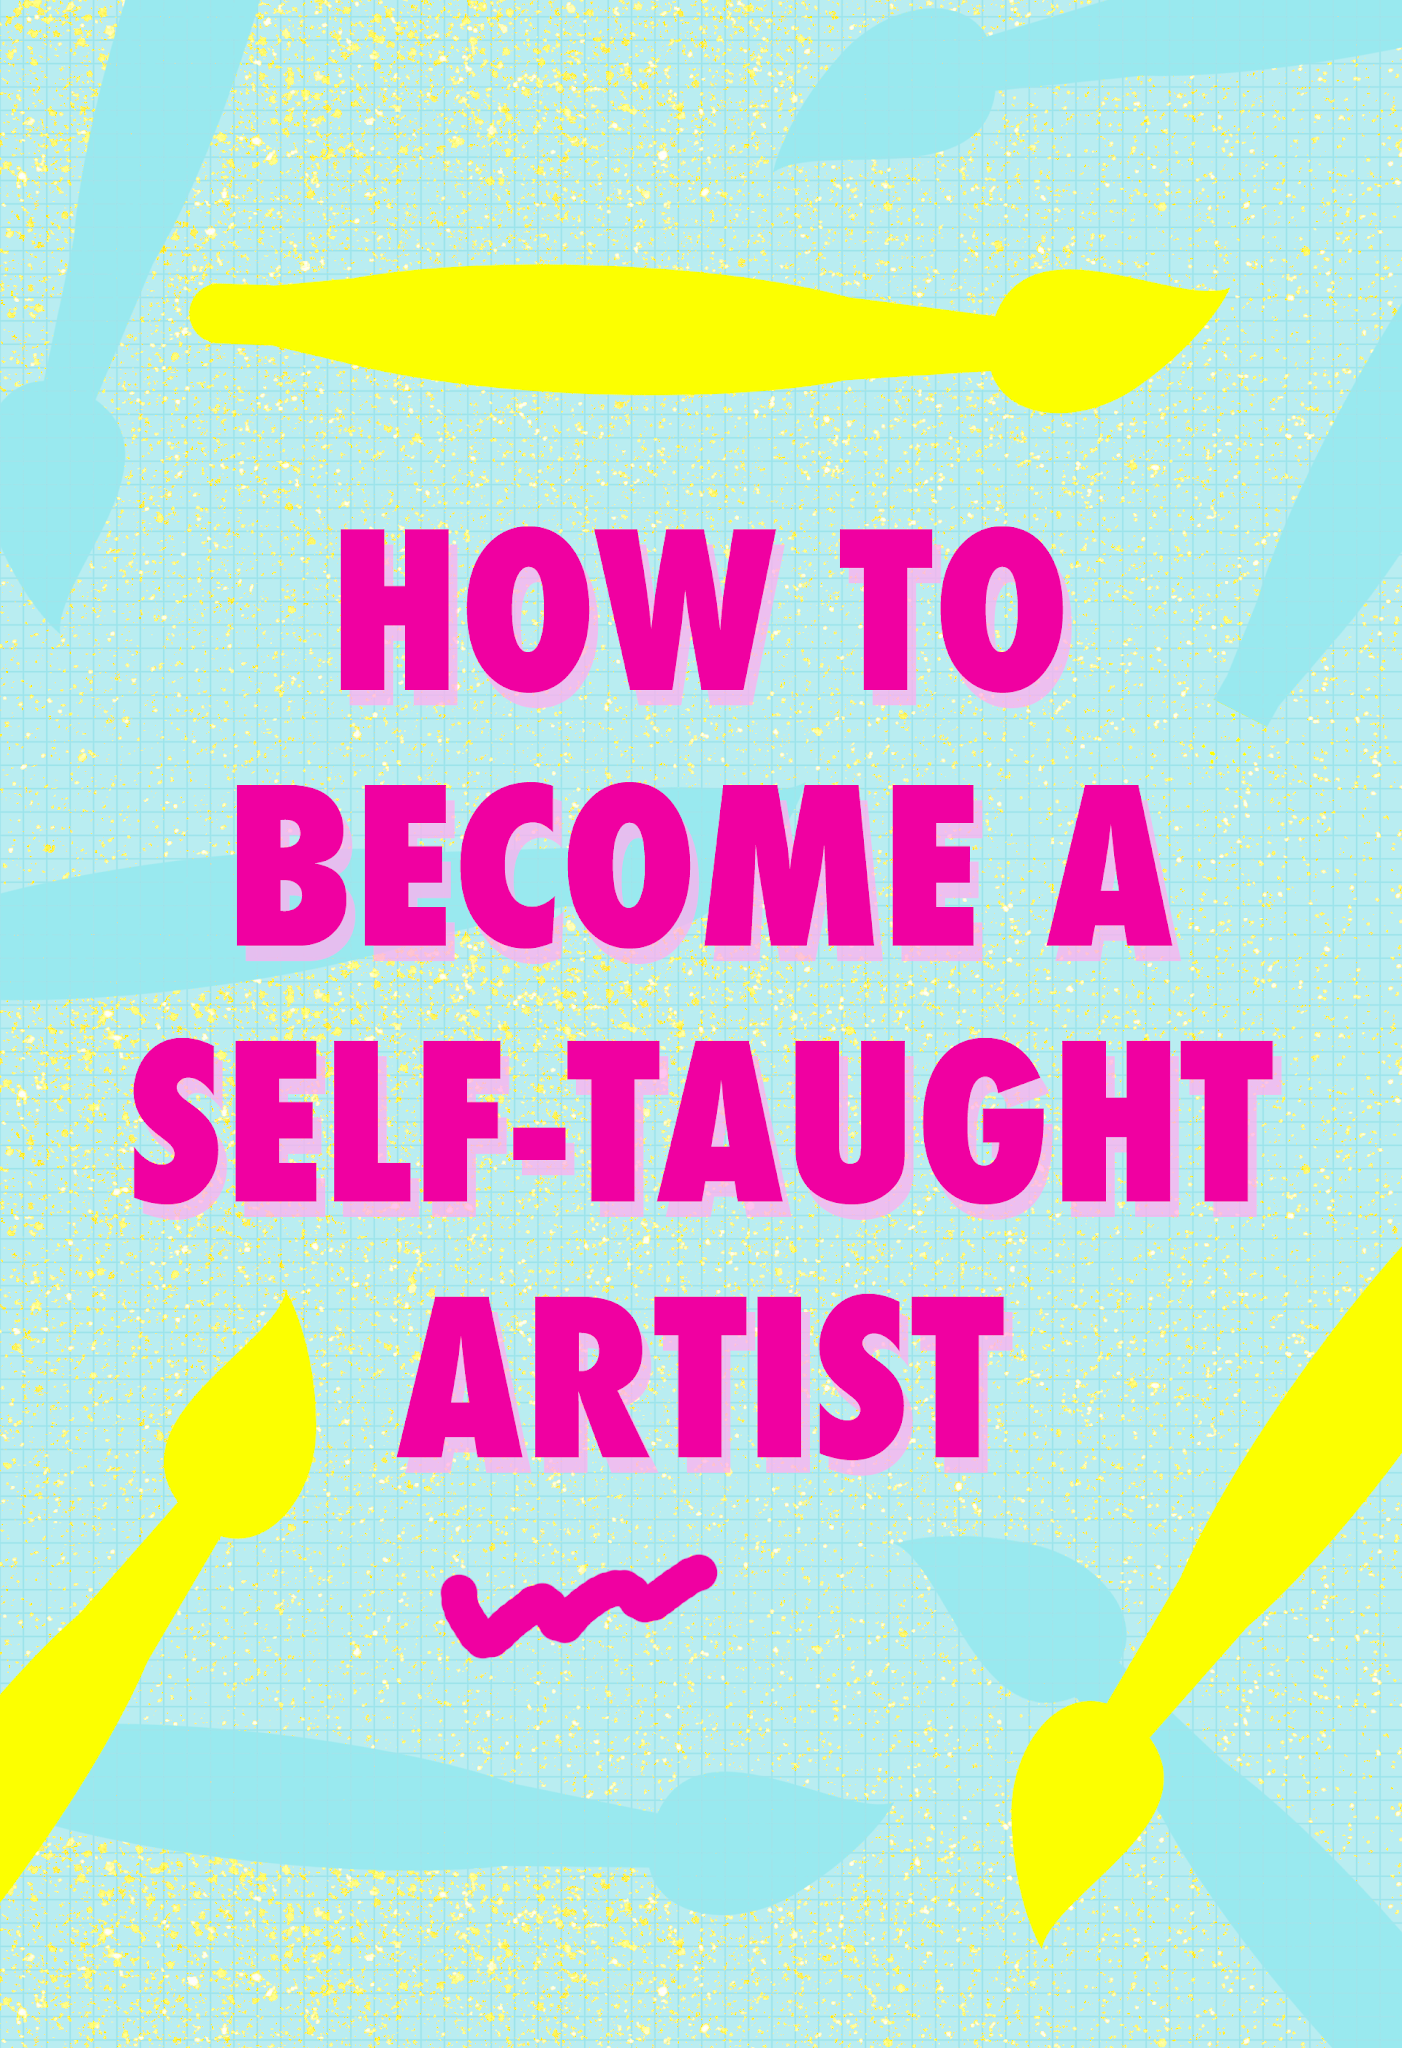 How to become a self-taught artist